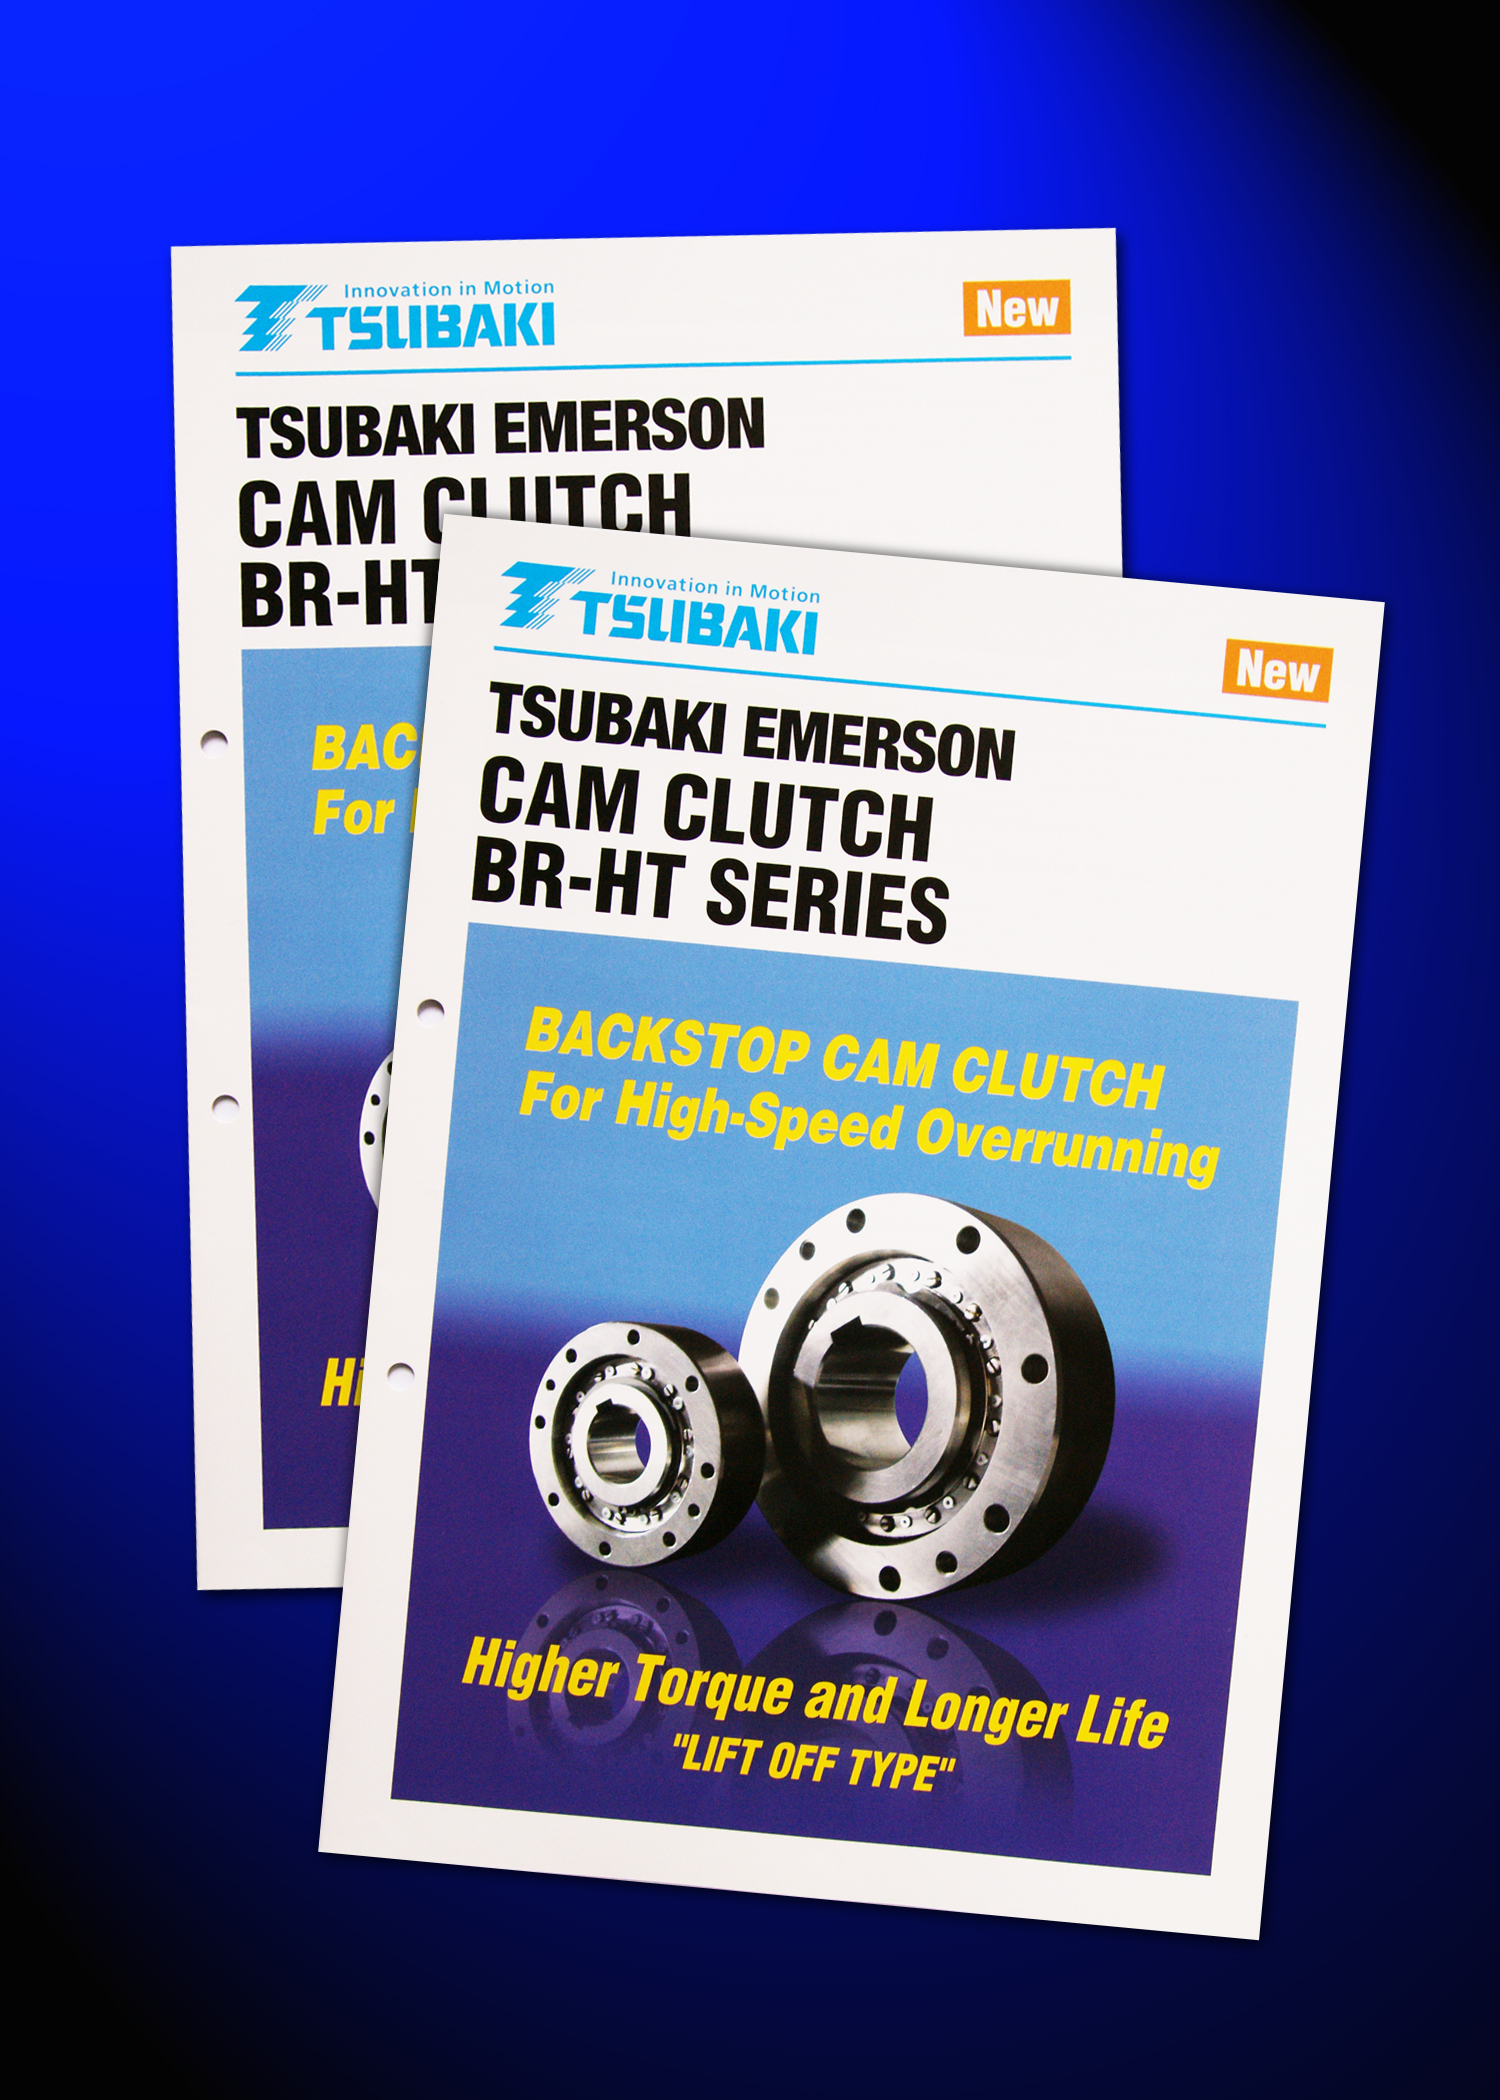 New Brochure Introduces Tsubaki's BR-HT Series Cam Clutches